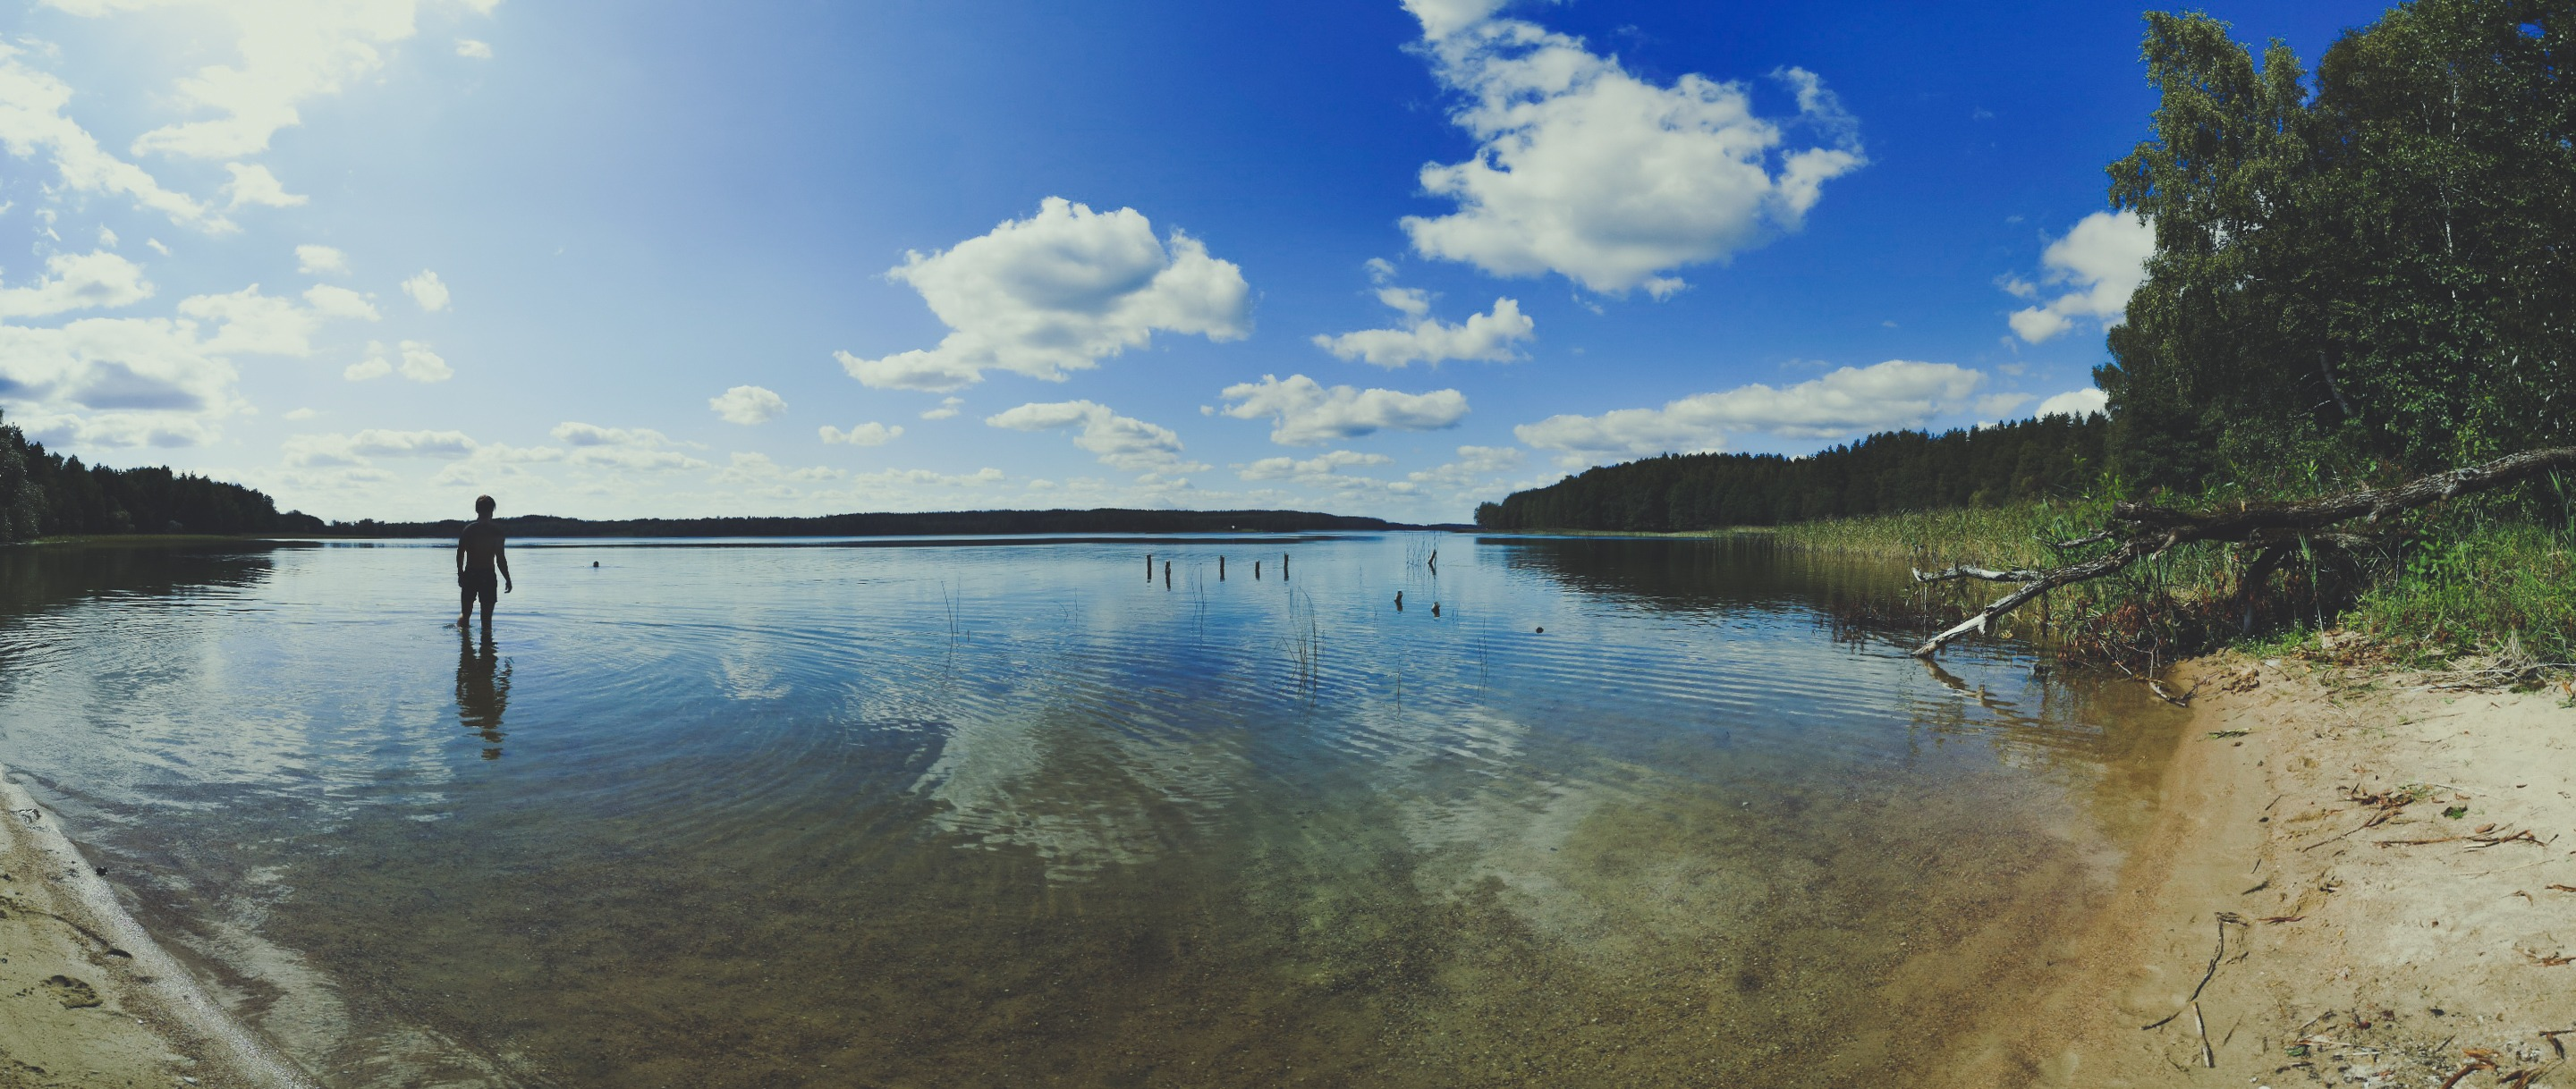 Going for a swim in White Lakajai Lake in Labanoras Regional Park, Lithuania. Photo Alis Monte [CC BY-SA 4.0], via Connecting the Dots